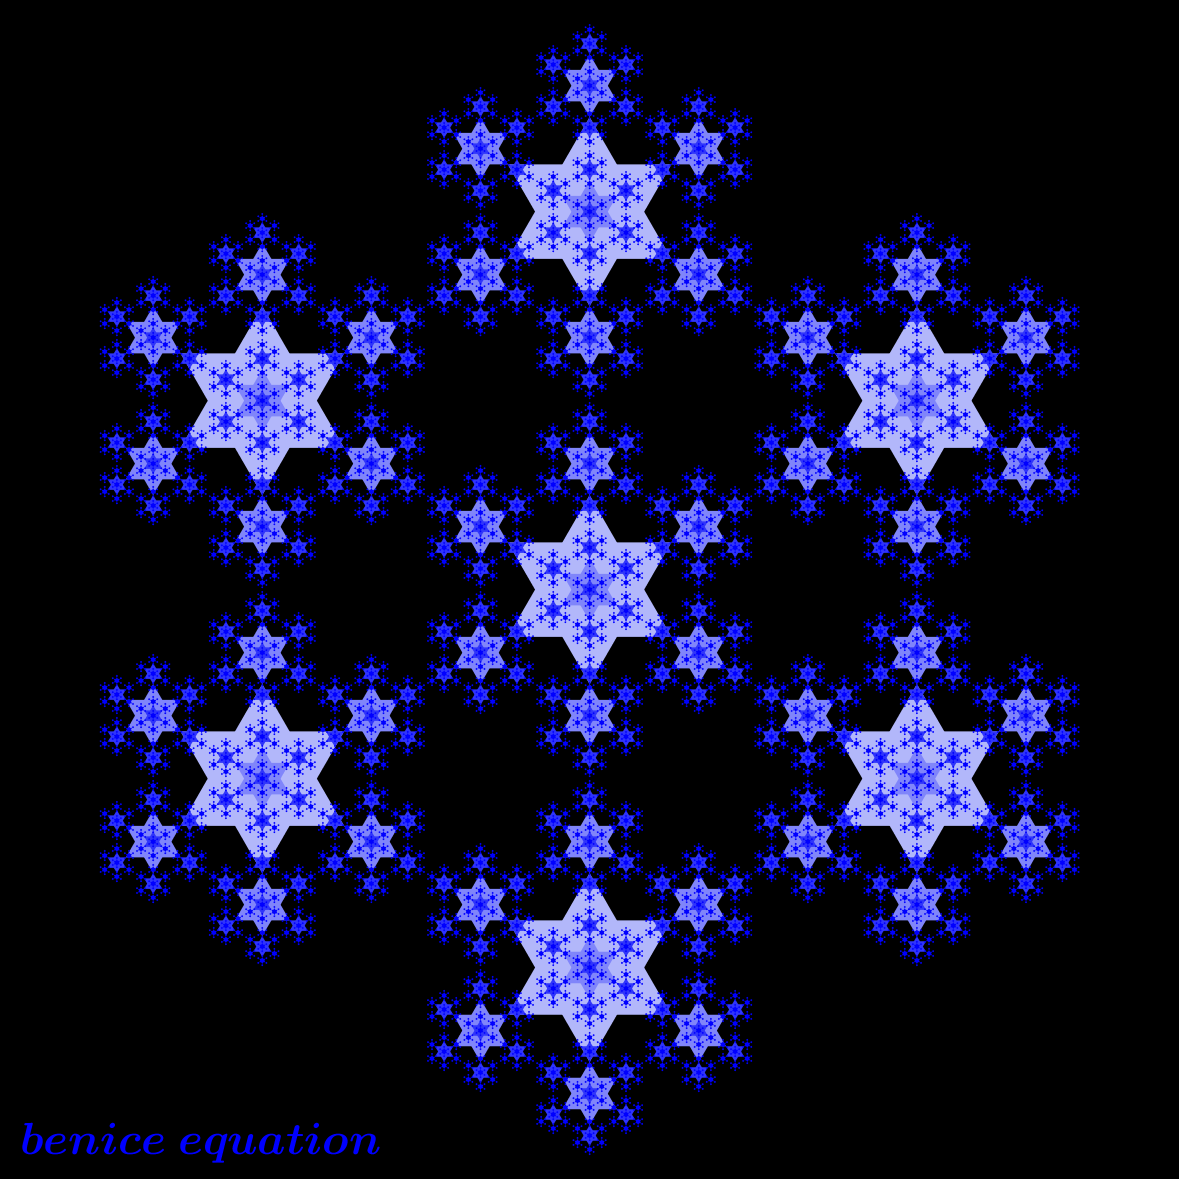 Fun math art (pictures) - benice equation: Fractal Star ...